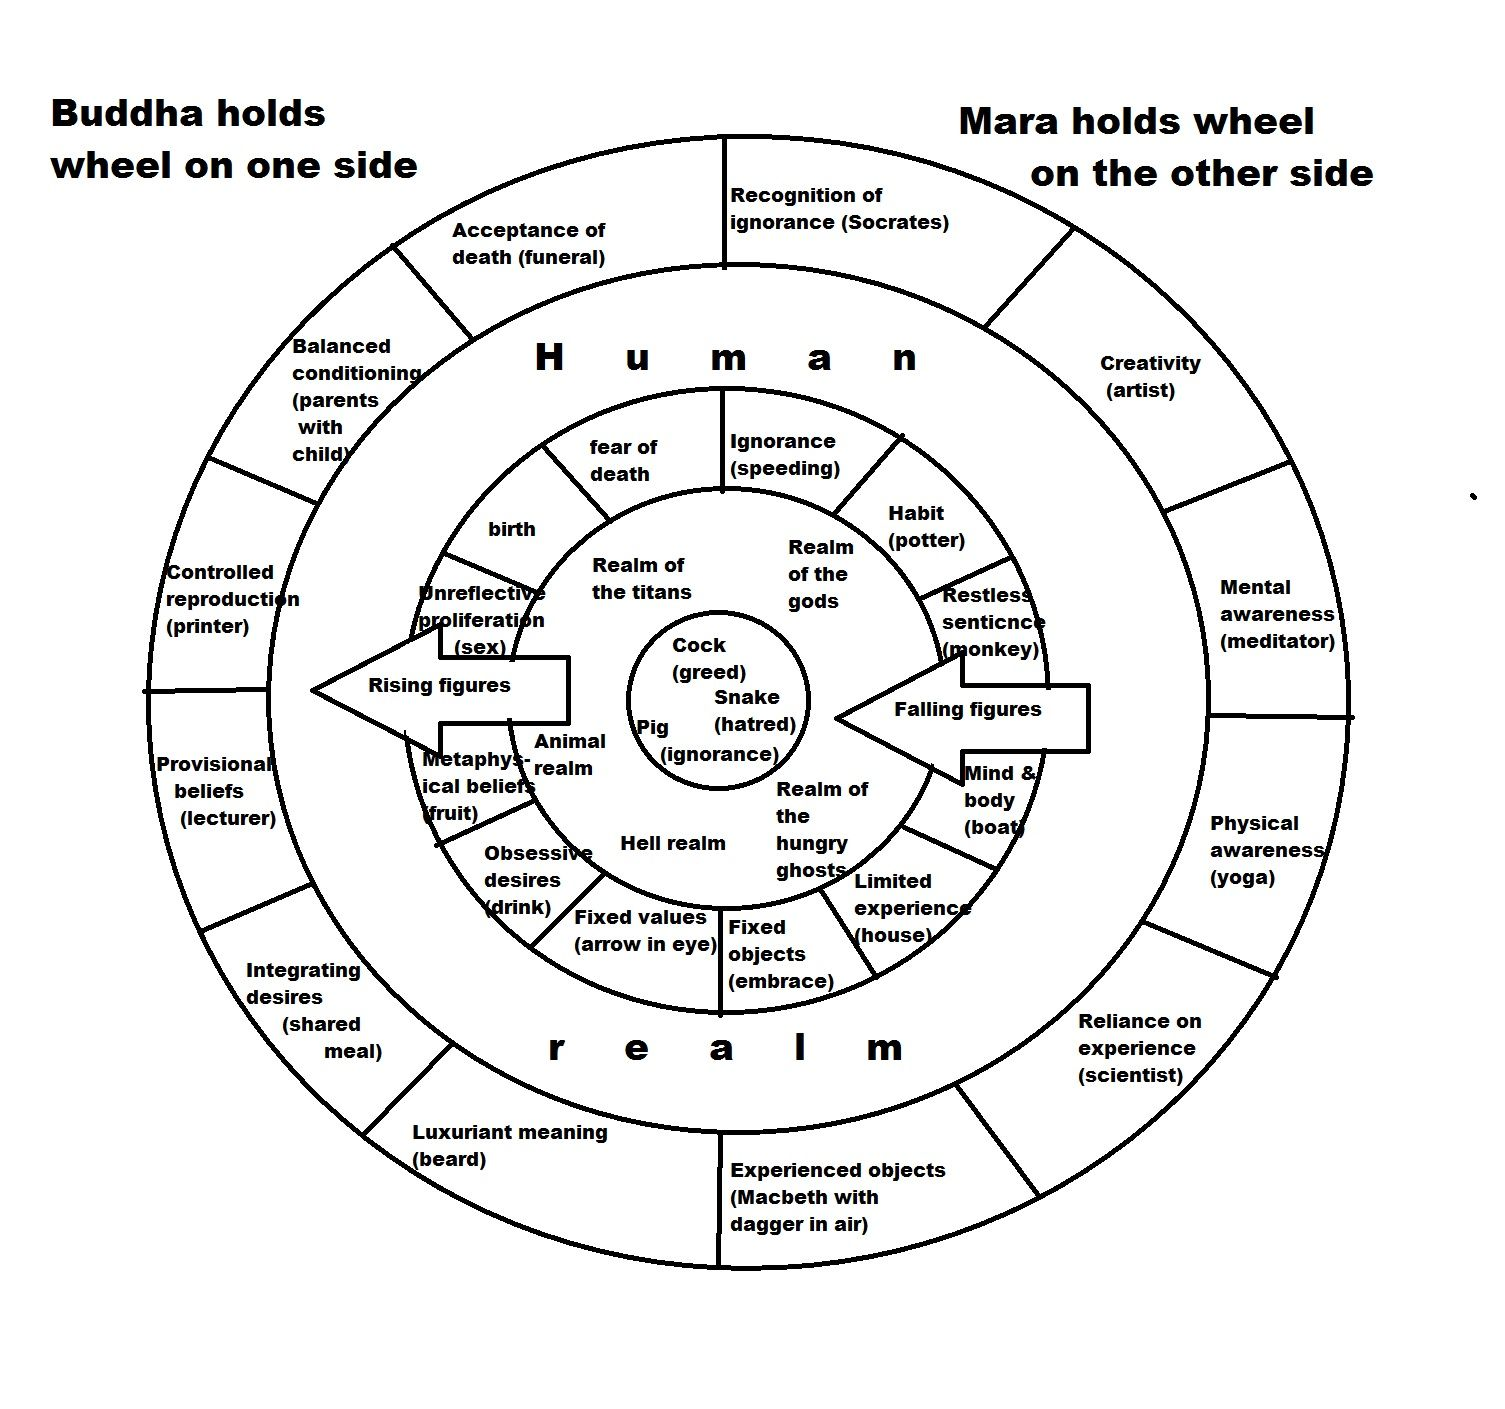 Plan For A Secular Buddhist Wheel Of Life